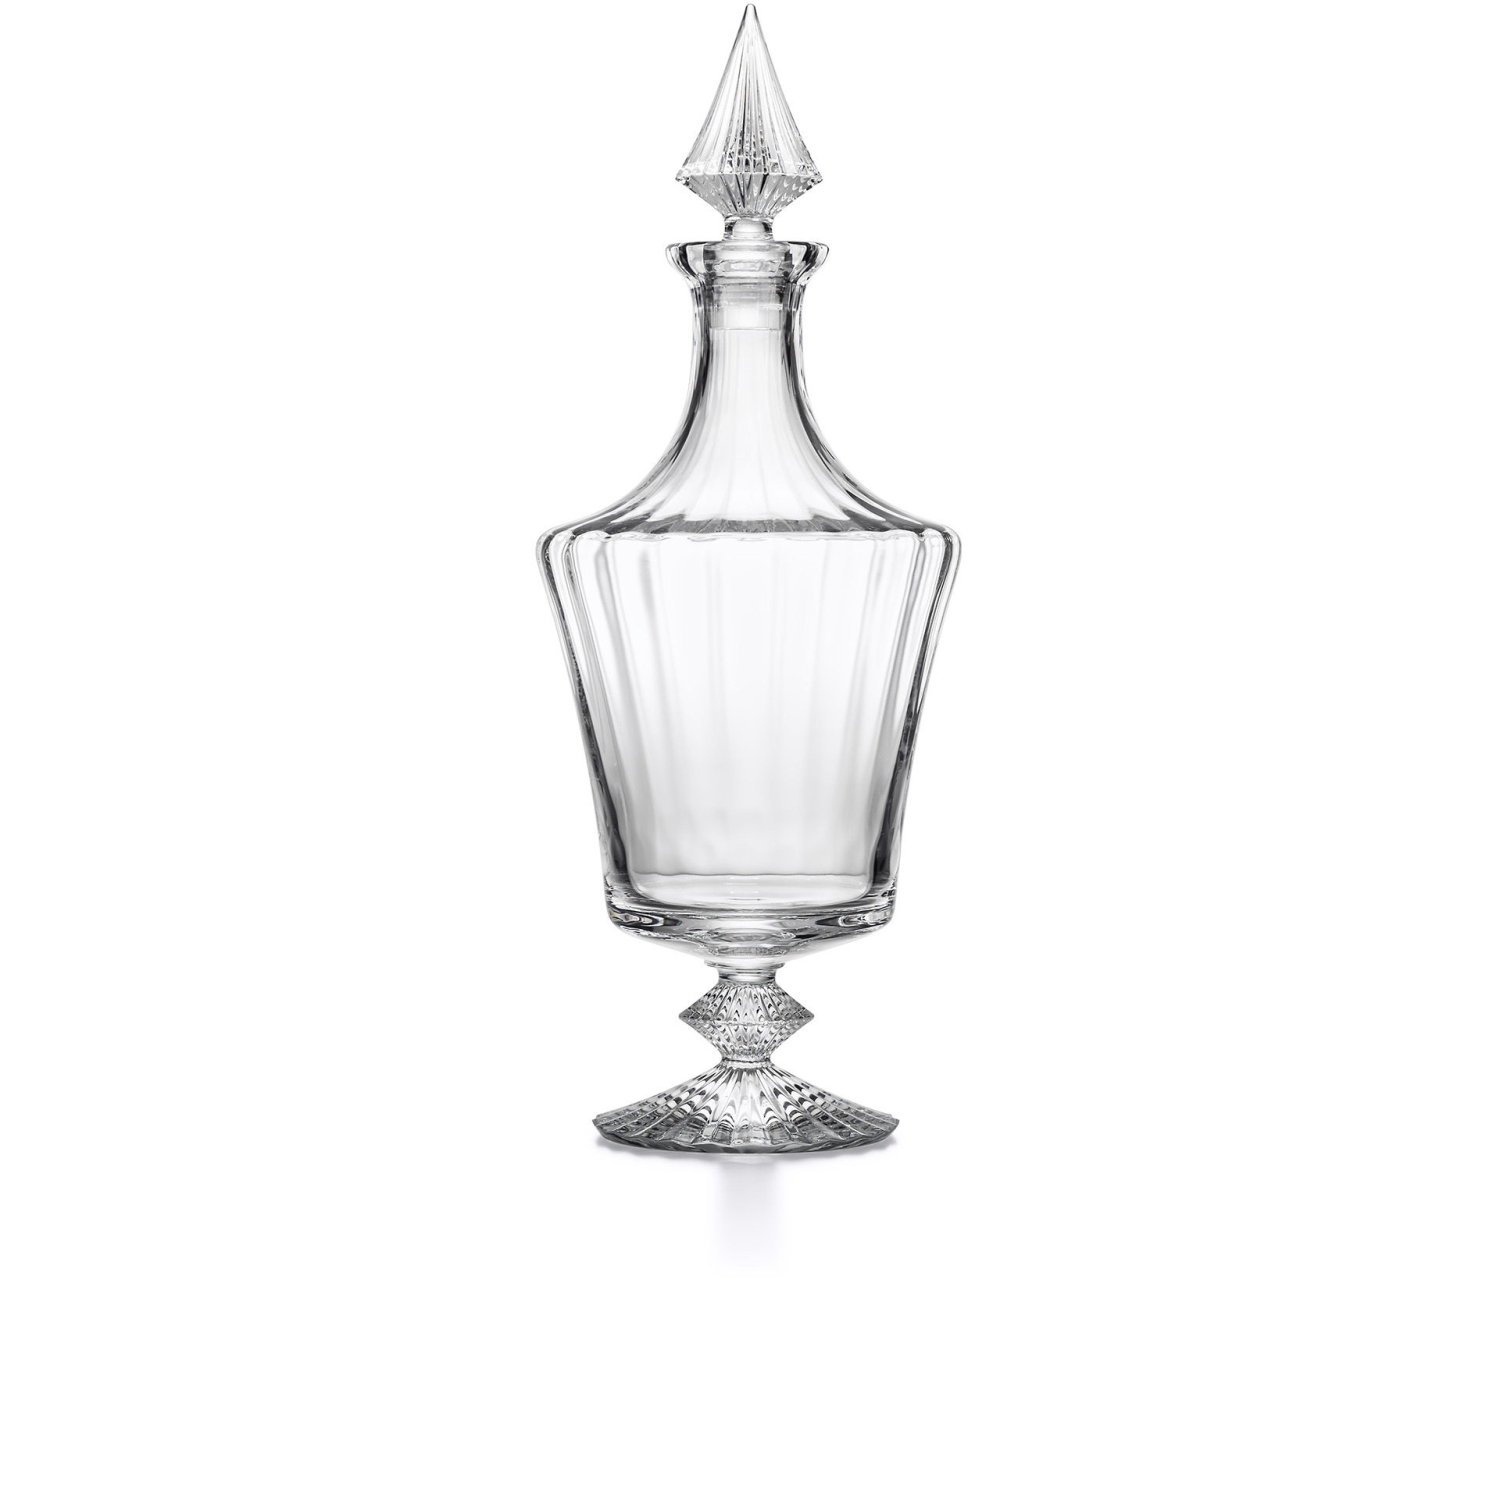 decanter Baccarat mille nuits decanter 2103961